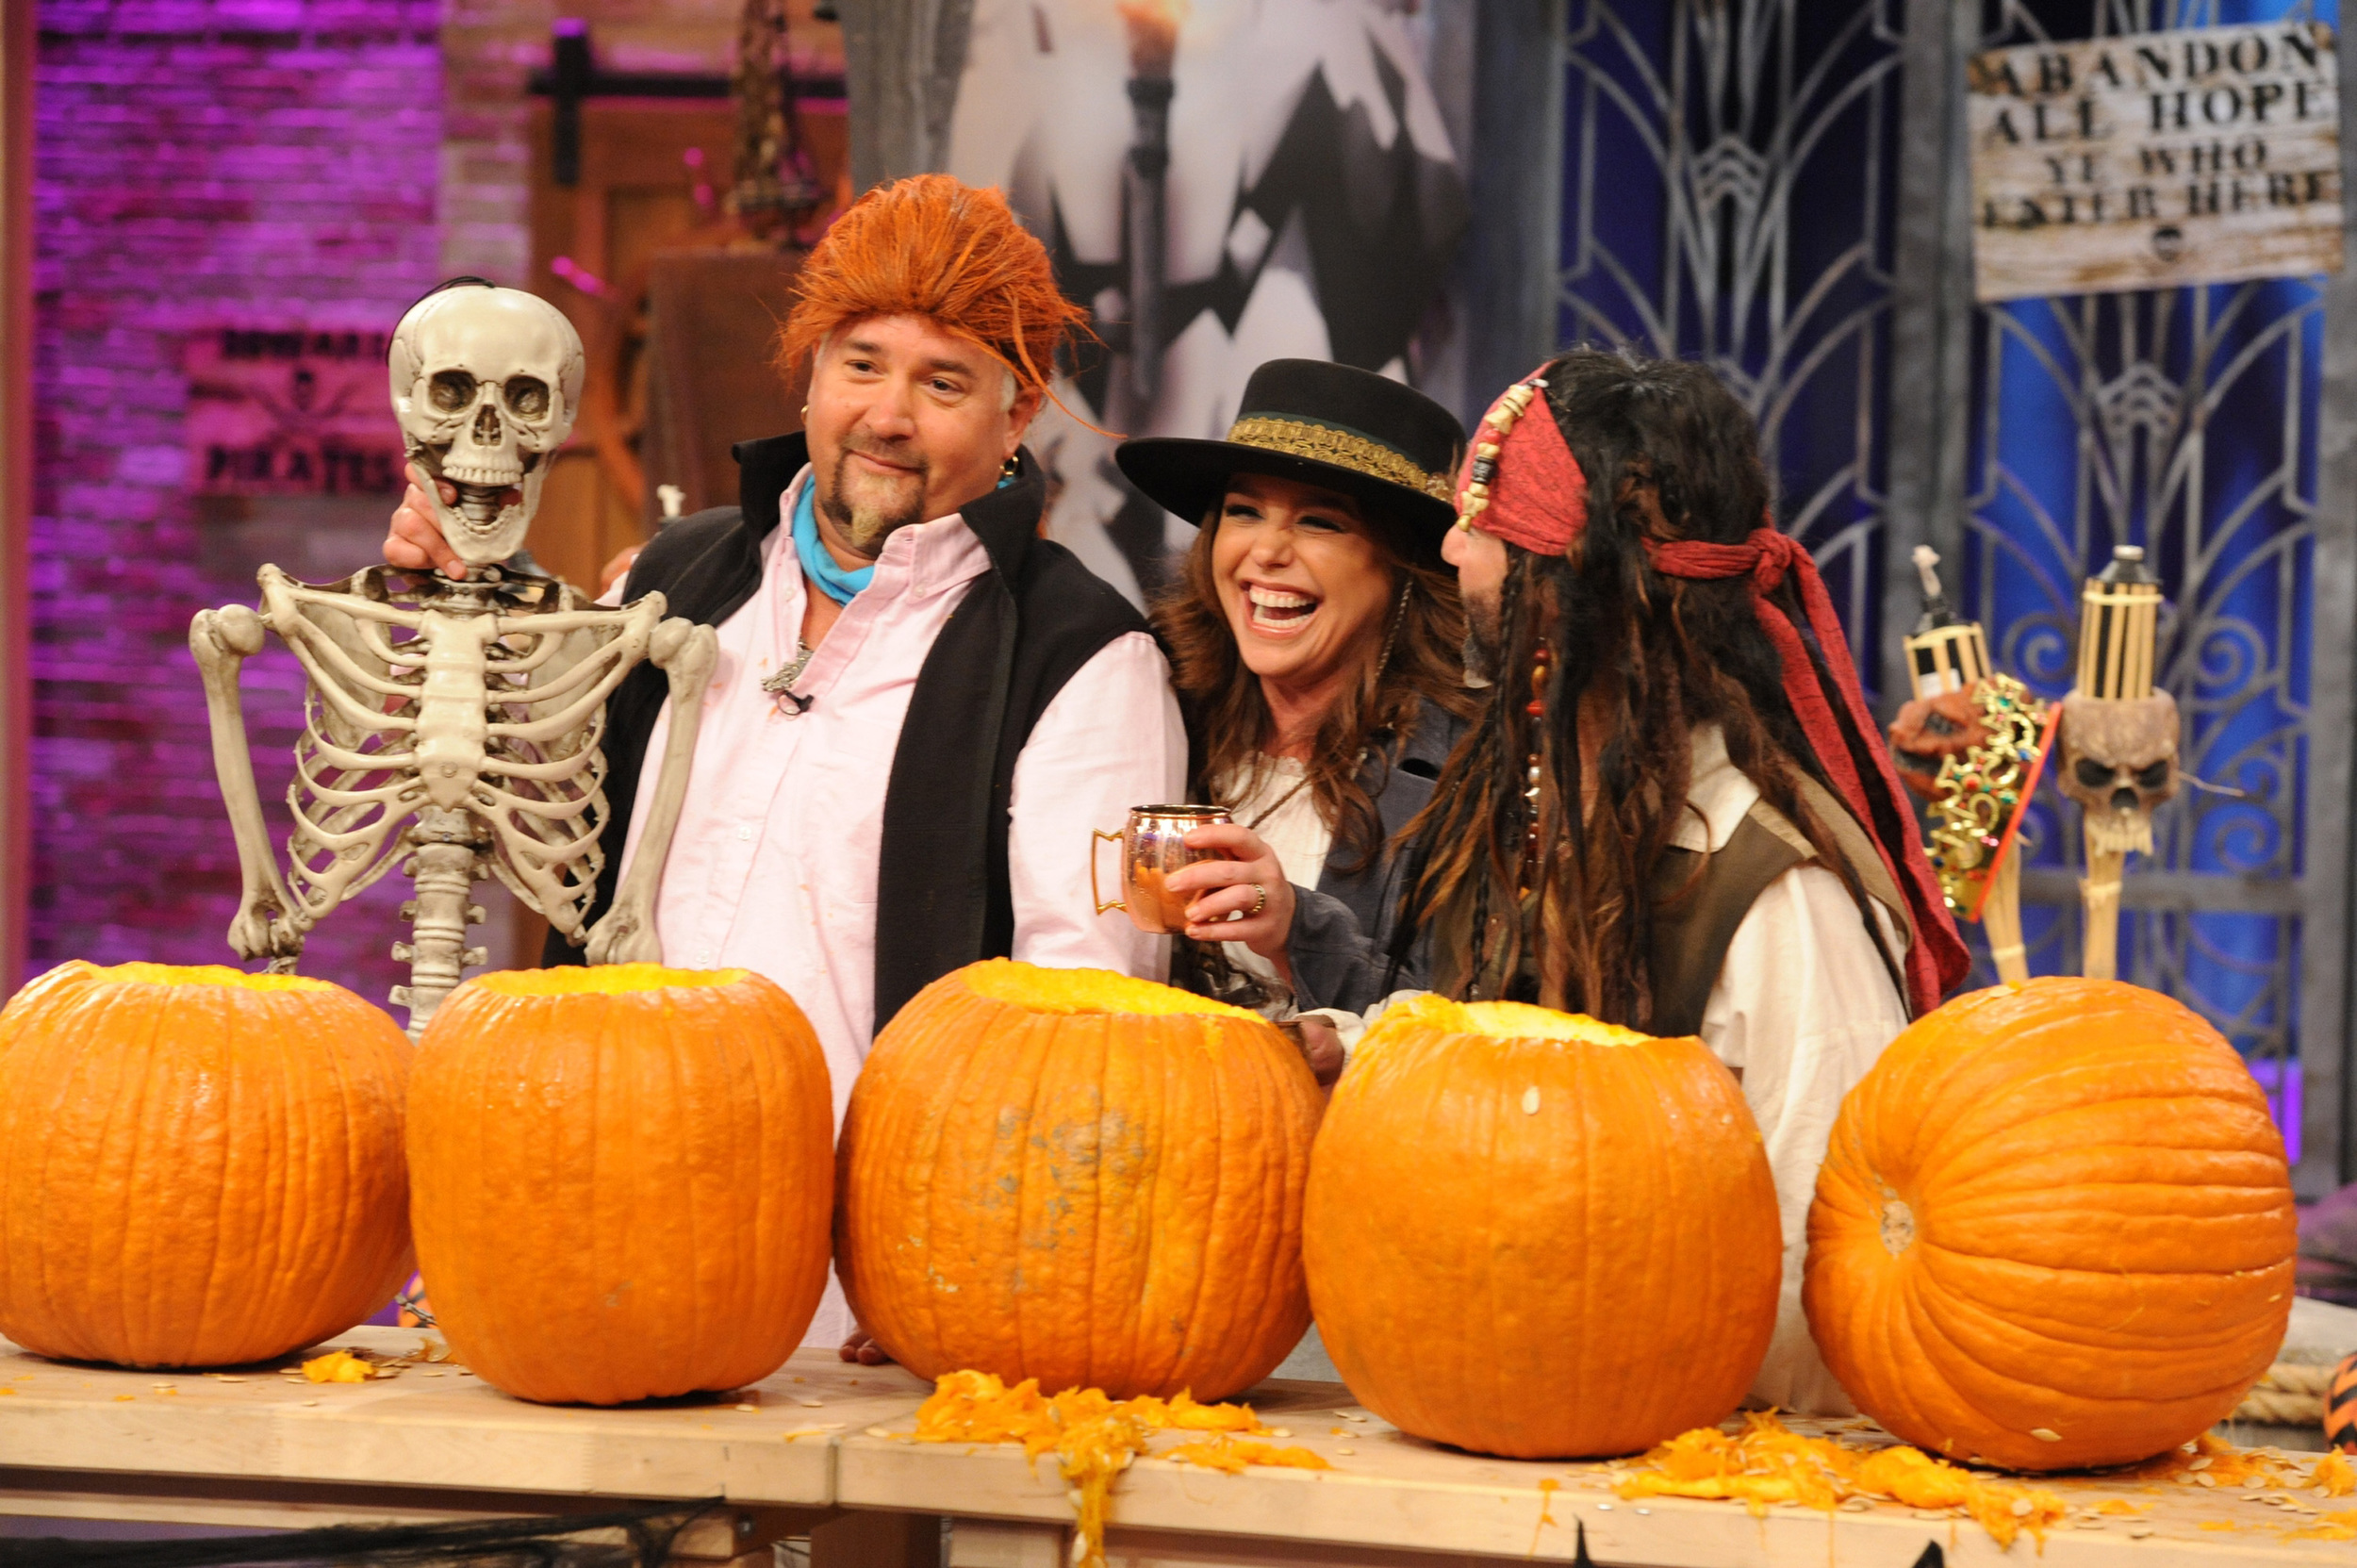 Rachael Ray's Pirate-themed Halloween Show